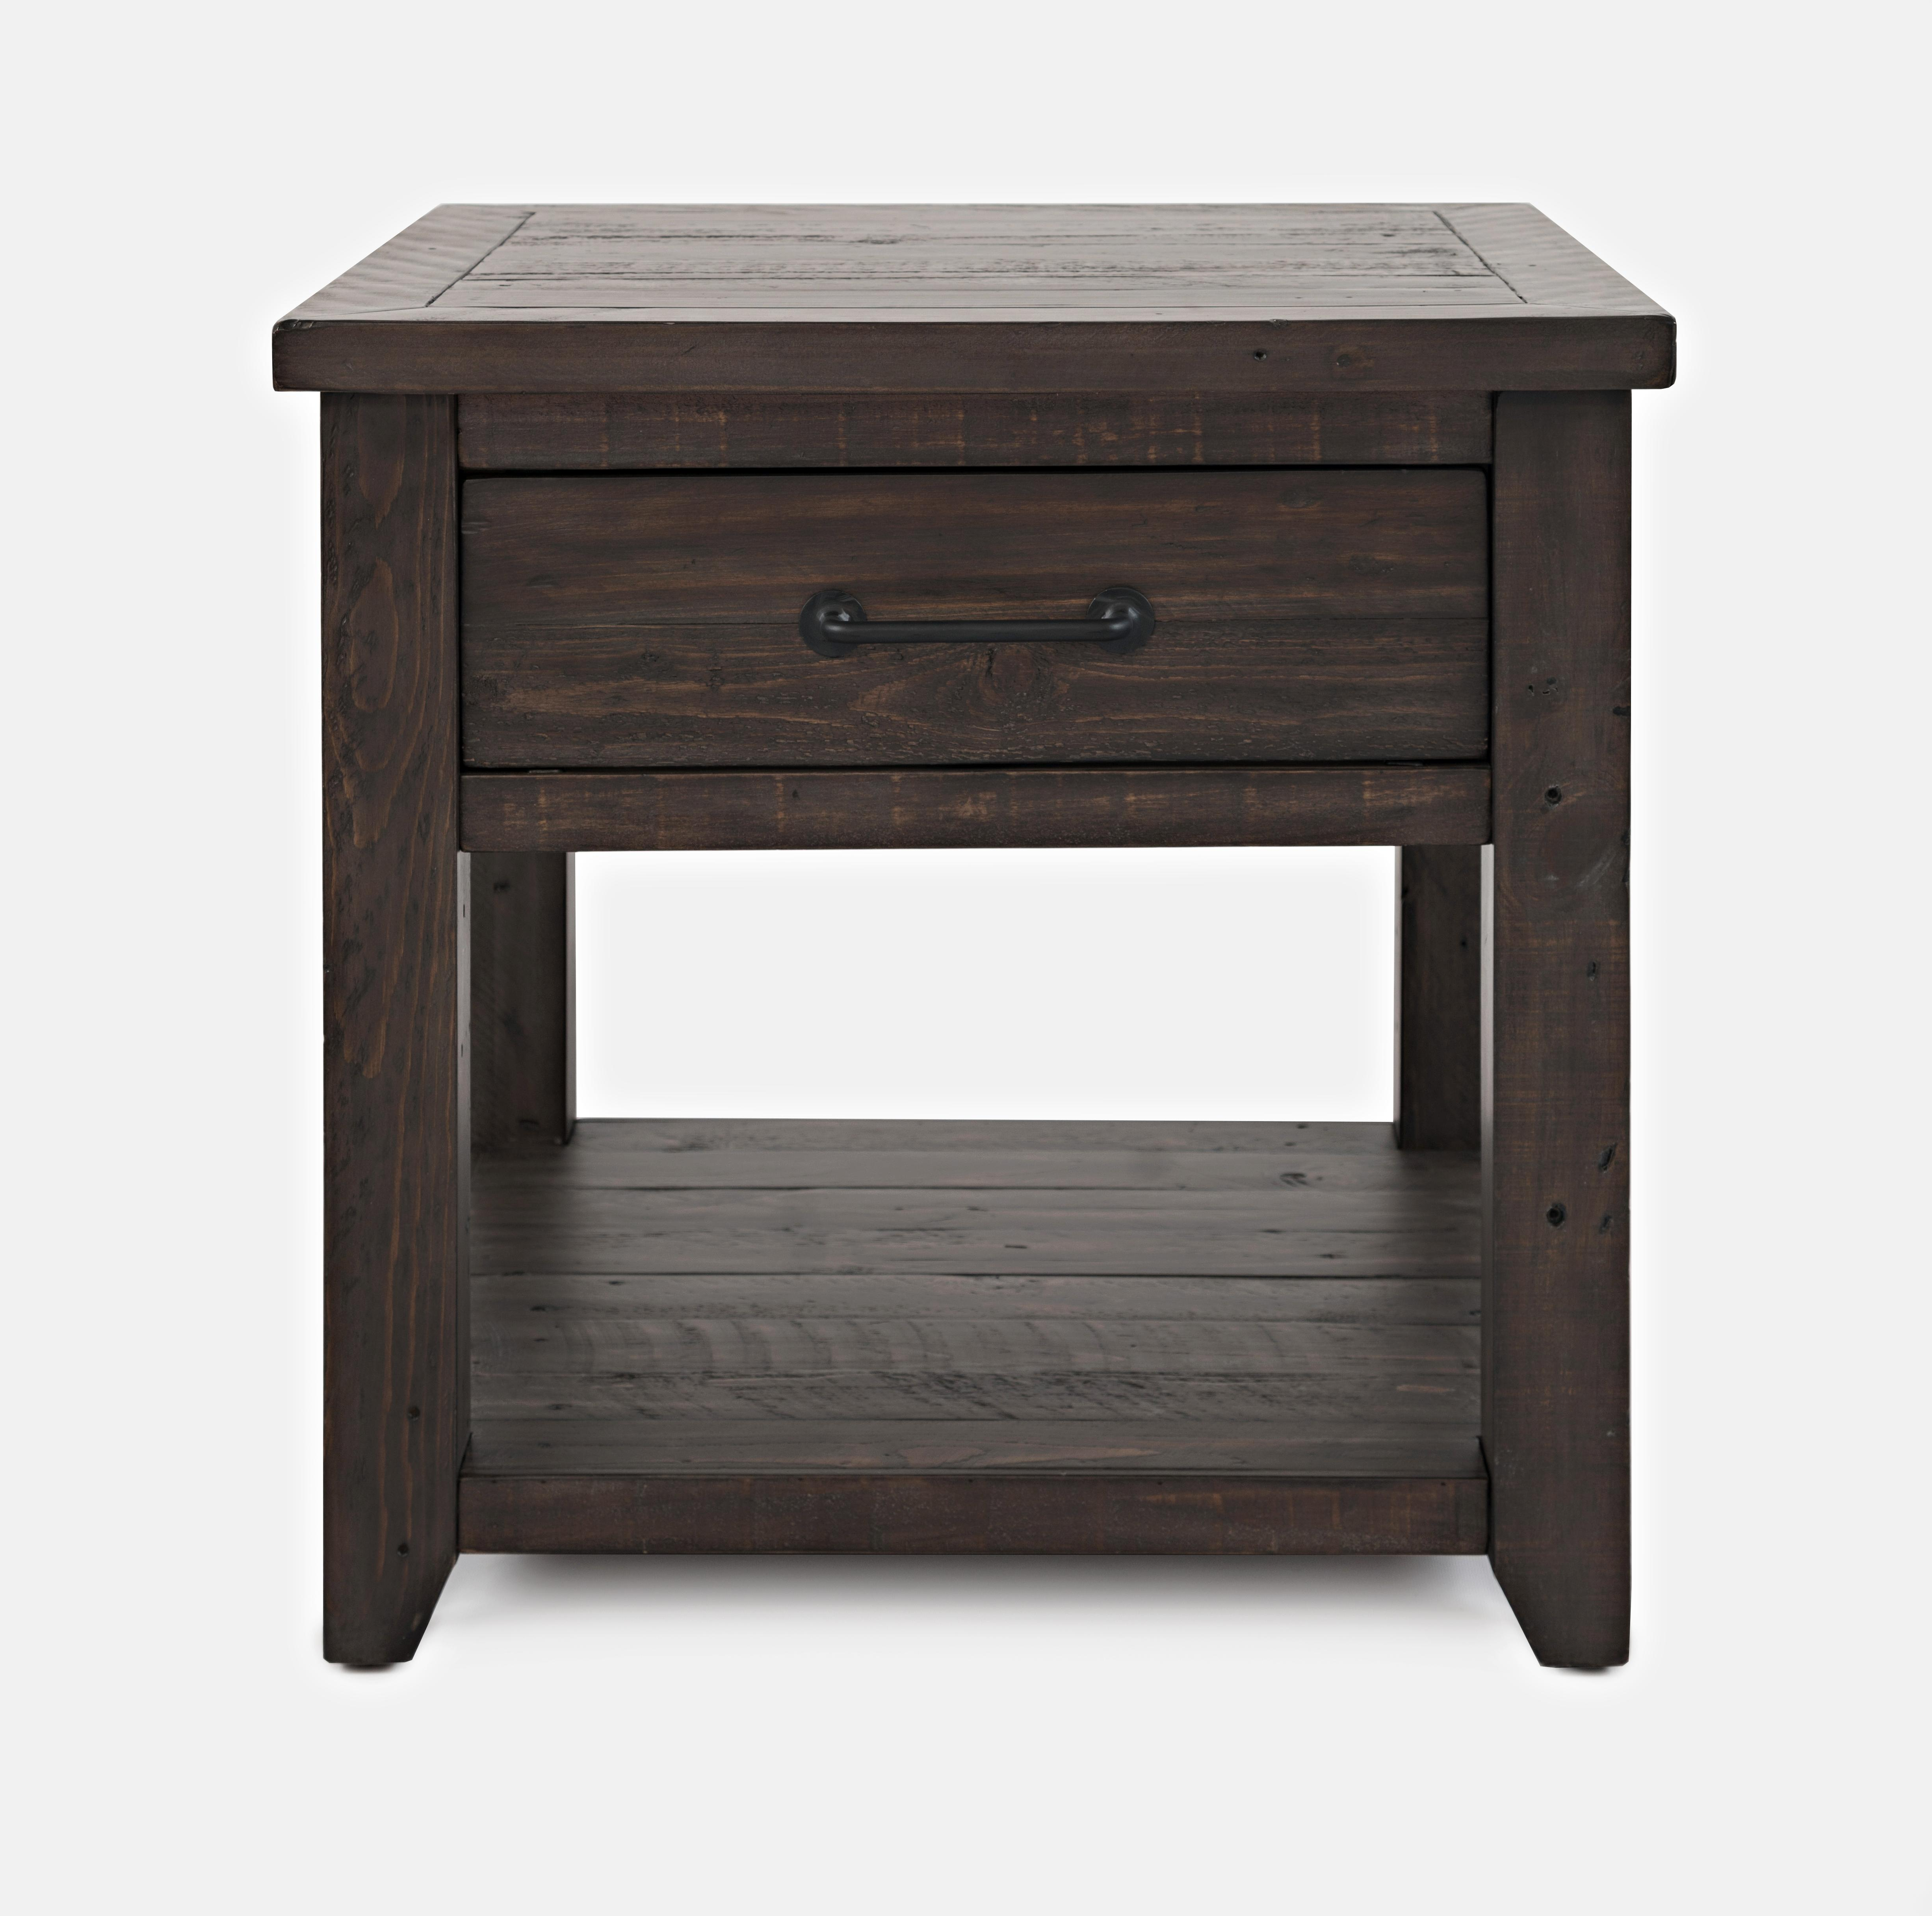 Surprising Jofran Furniture Madison County Harris Barnwood End Table Interior Design Ideas Gentotryabchikinfo